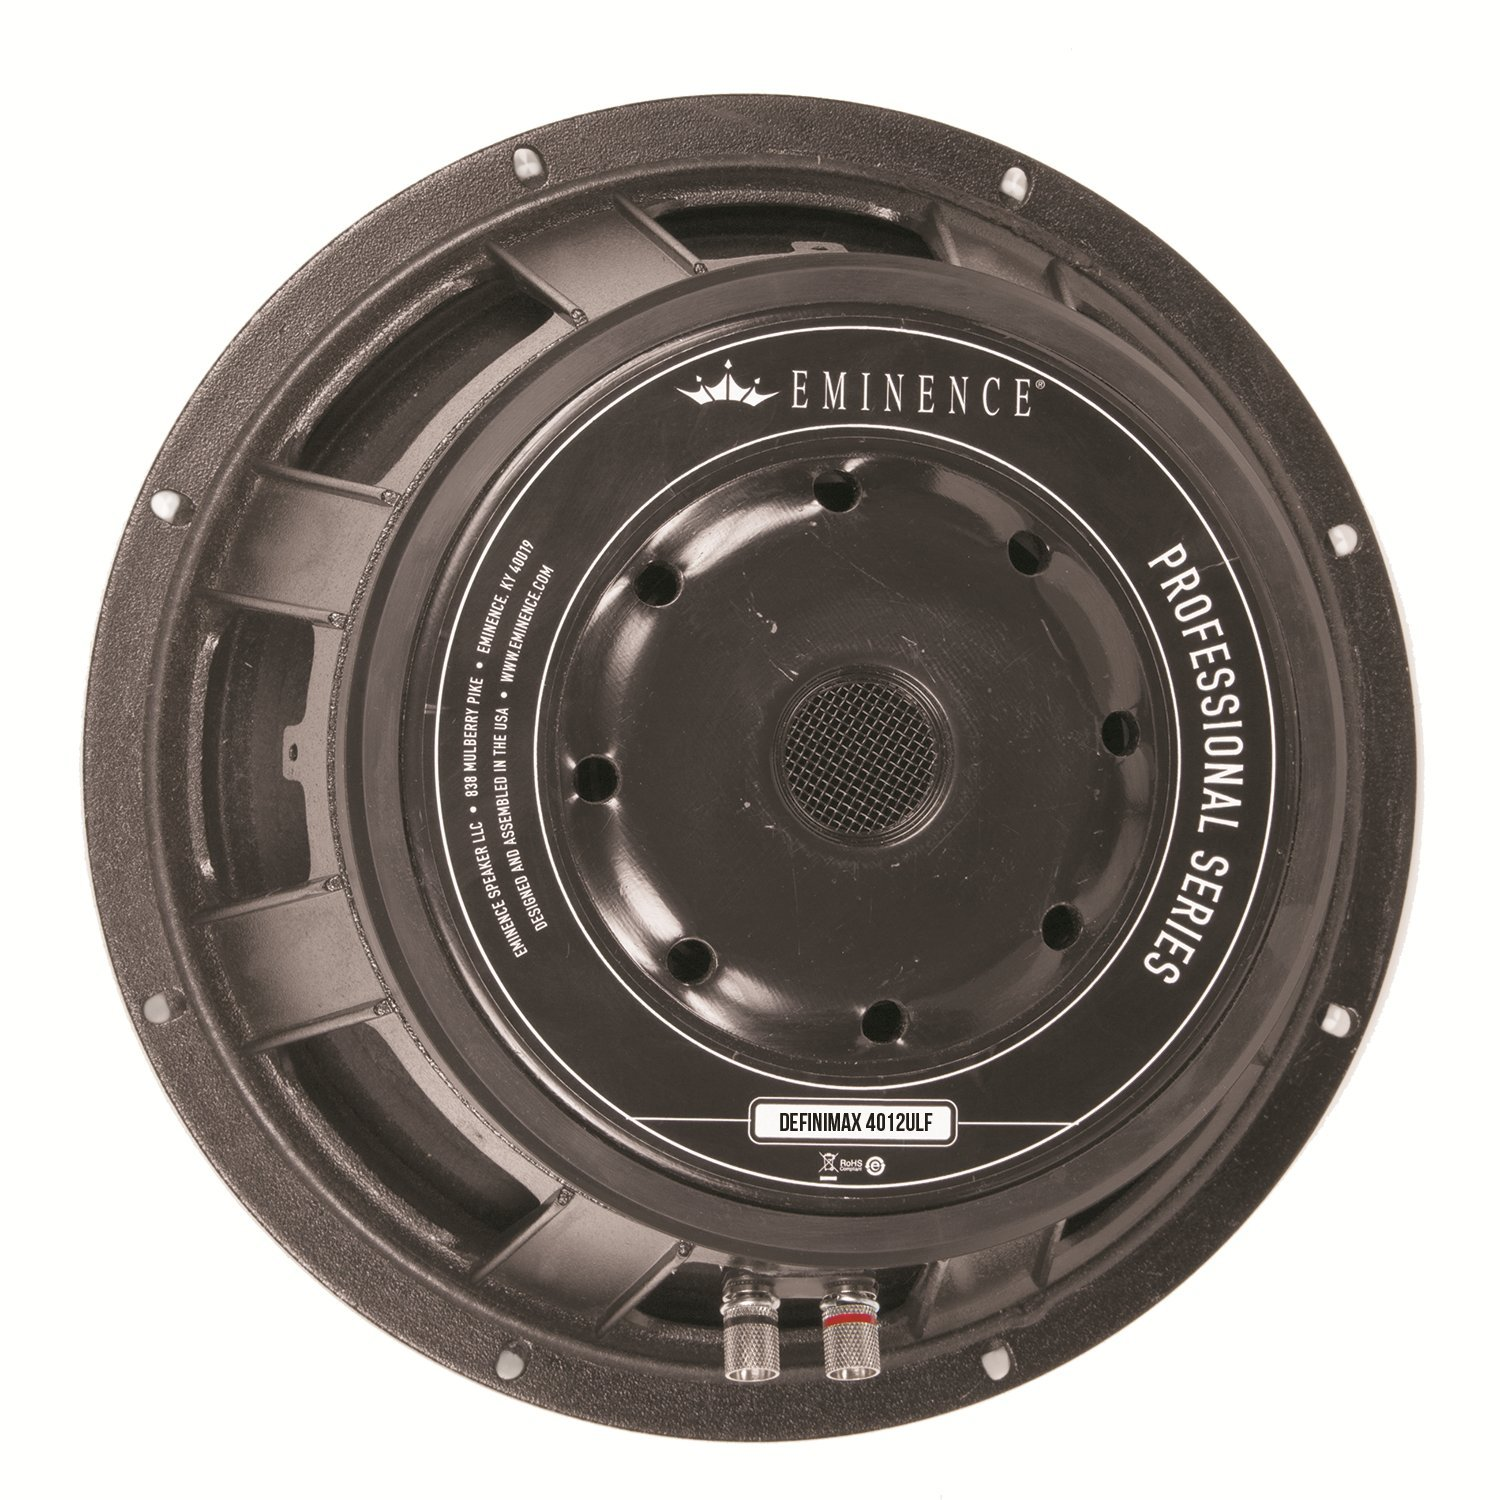 Eminence Professional Series Definimax 4012ULF-8 12'' Pro Audio Speaker, 1200 Watts at 8 Ohms